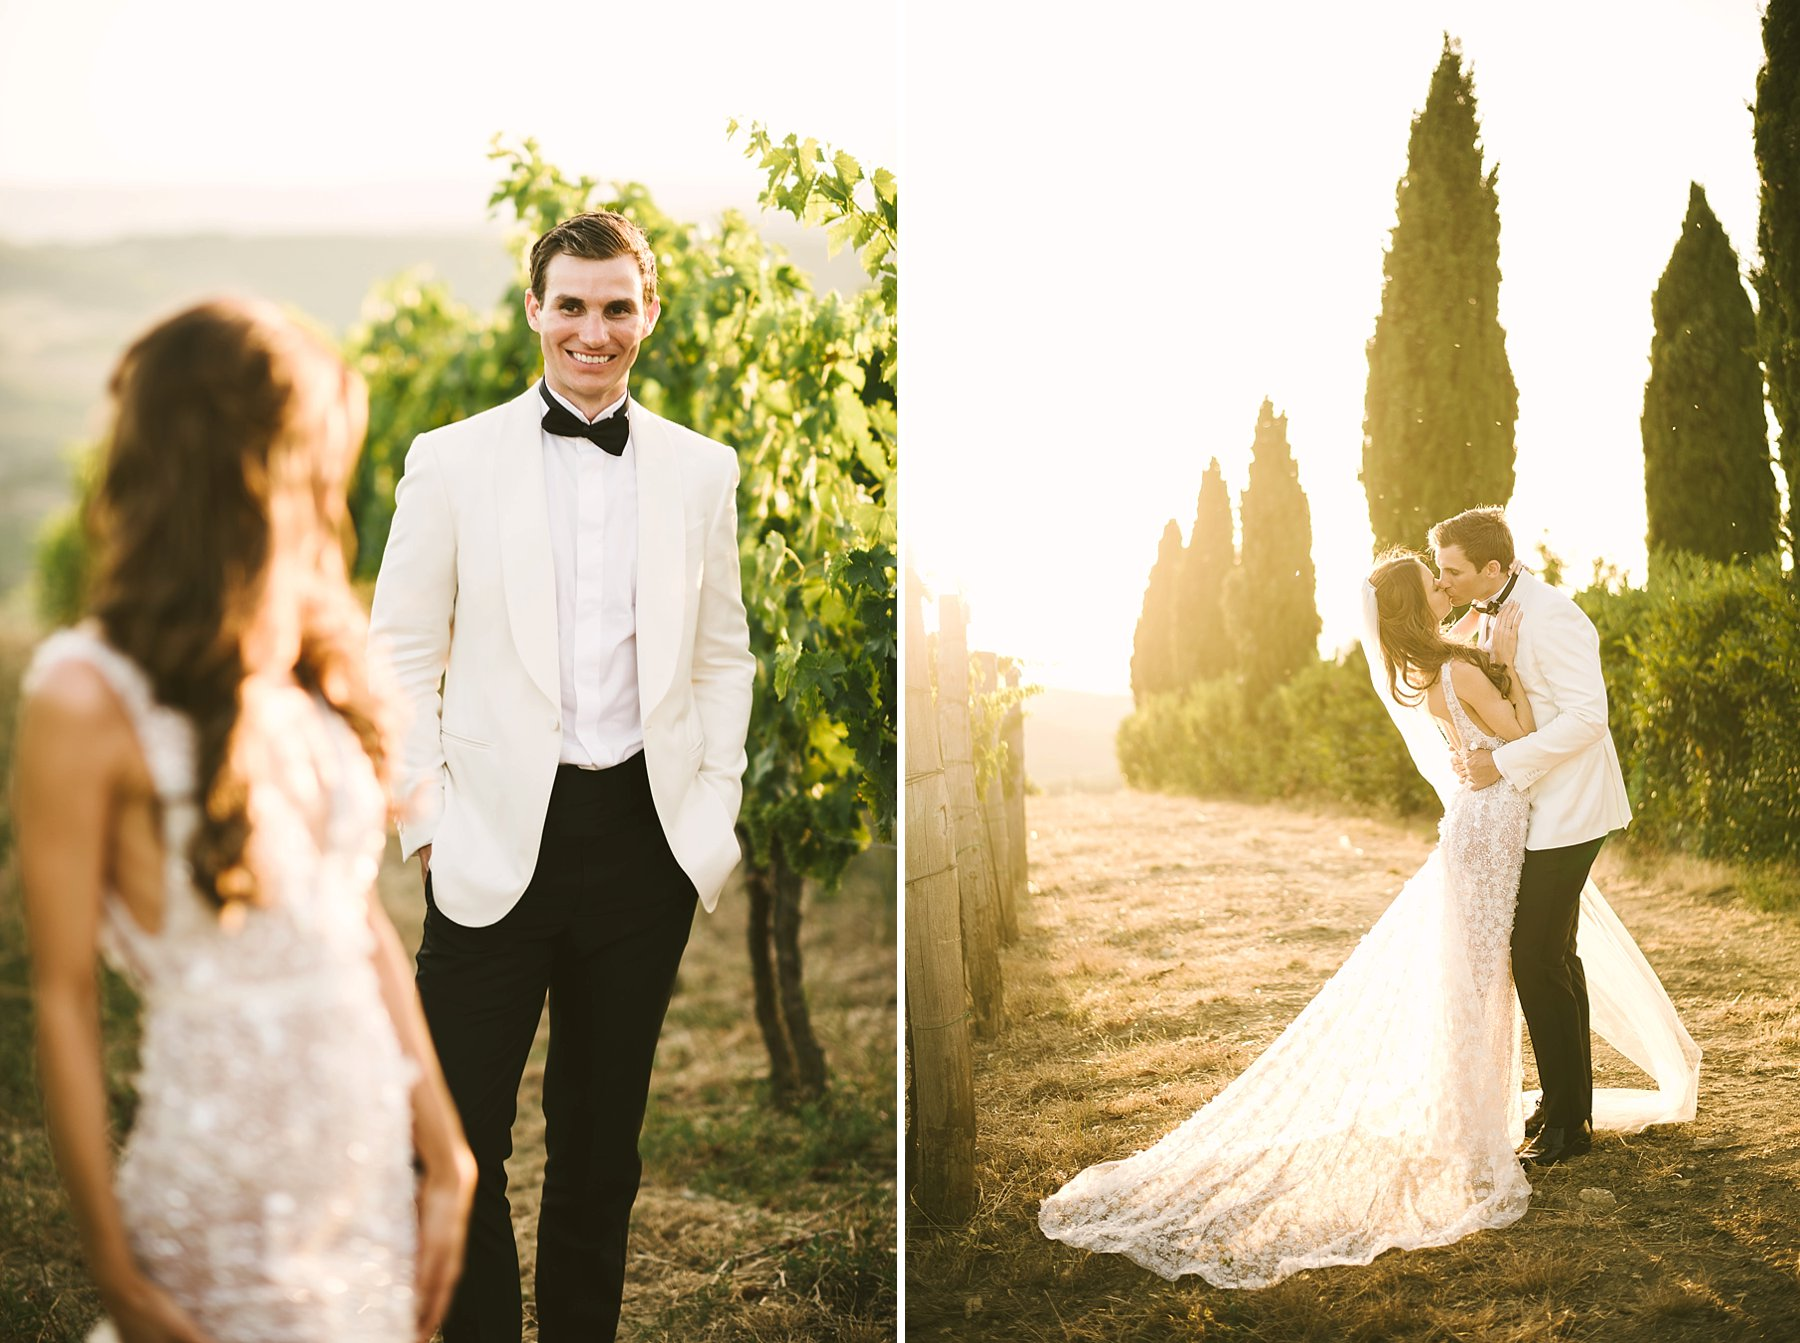 Lolvey moment of beautiful bride Emily and groom Luke in Tuscany countryside vineyard